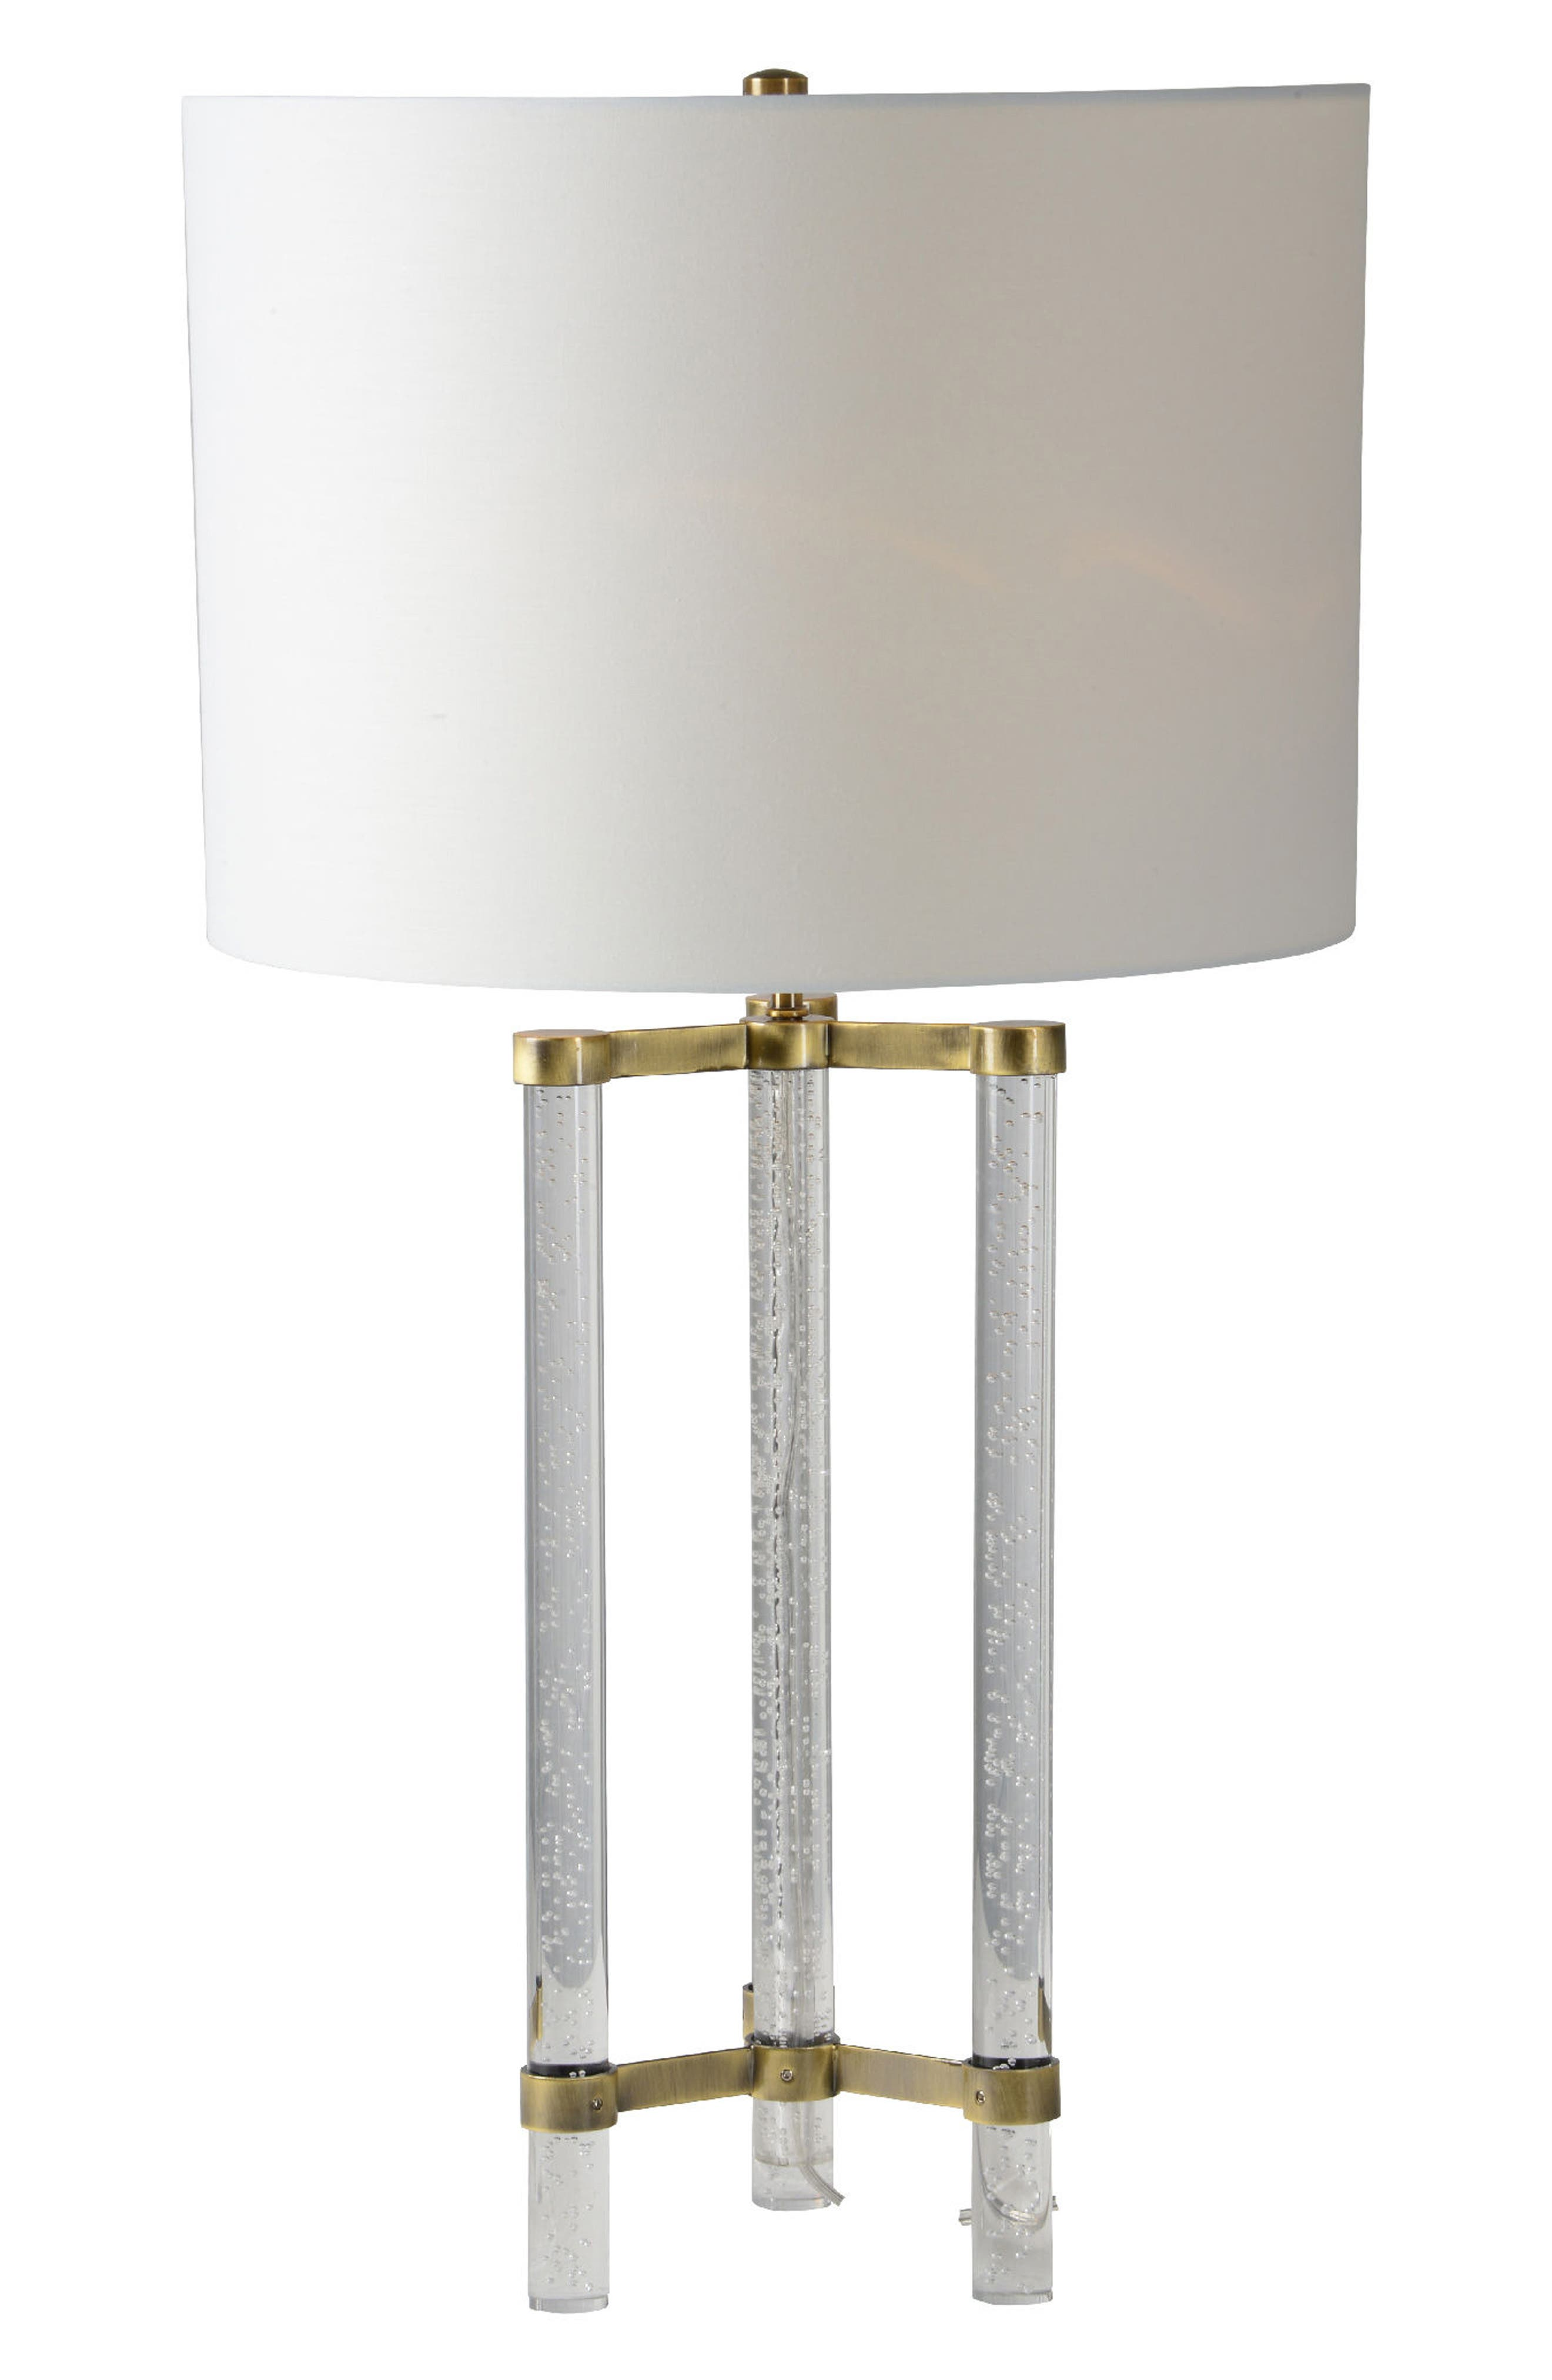 Dais Table Lamp,                             Main thumbnail 1, color,                             Antique Gold Plated